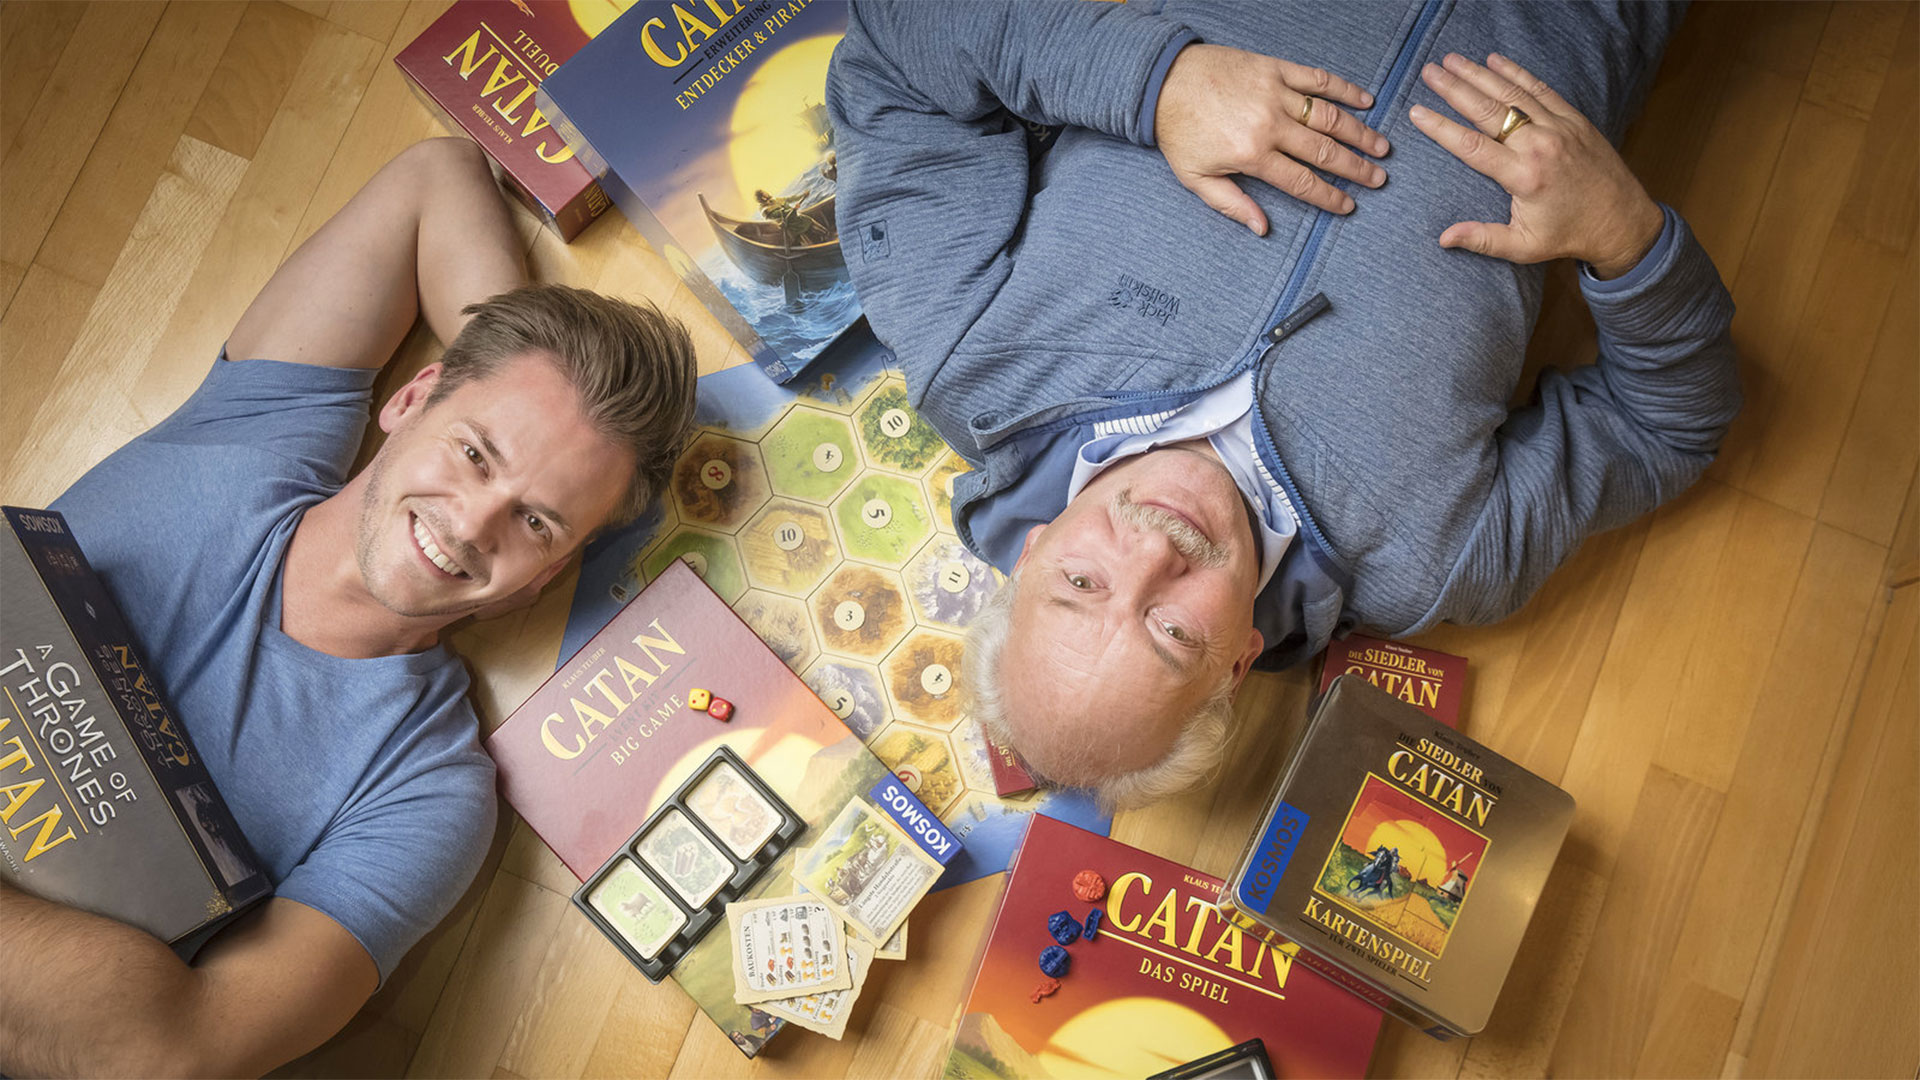 Klaus Teuber, creator of the popular board game Settlers of Catan, with his son Benjamin Teuber, managing director of Catan Inc. As families shelter in place, the game's sales have skyrocketed. Celebrates the 25th anniversary since launch, the elder Teuber has released an autobiography, My Way to Catan.